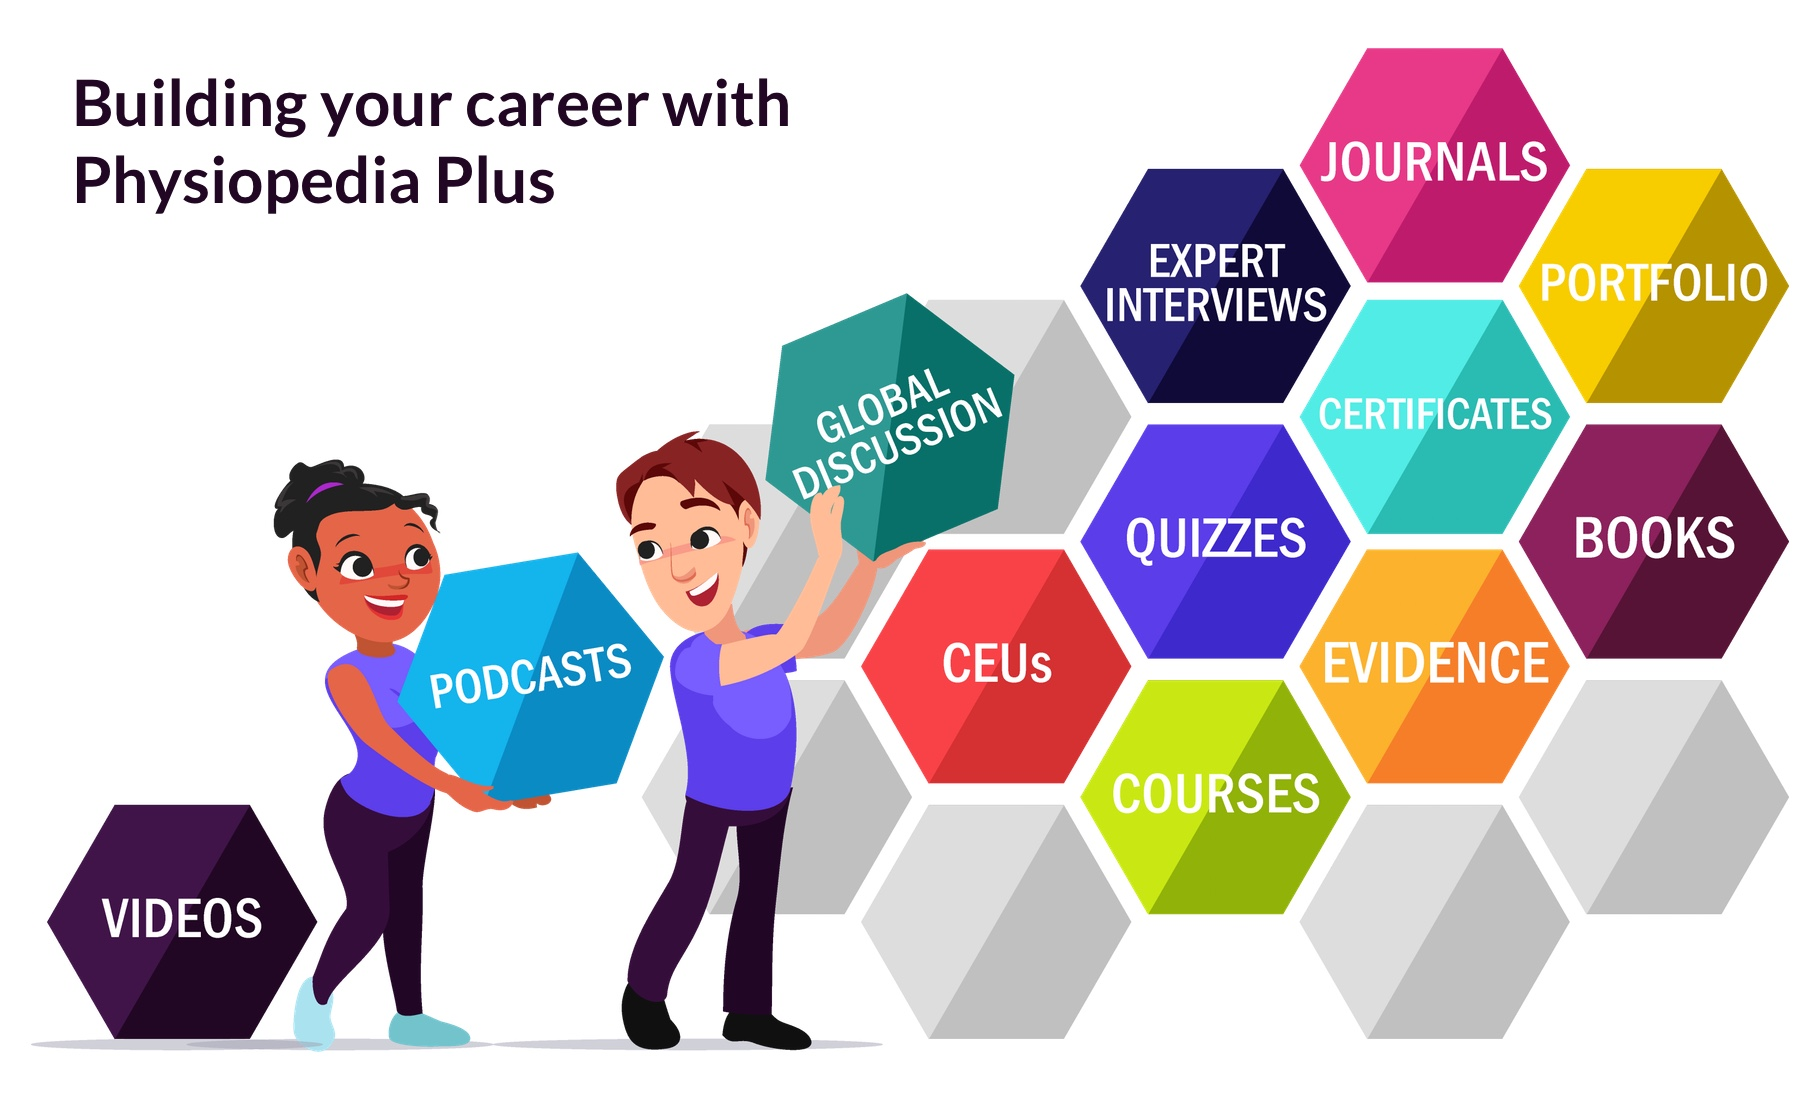 Physiopedia Plus - the building blocks for your career in physiotherapy / physical therapy